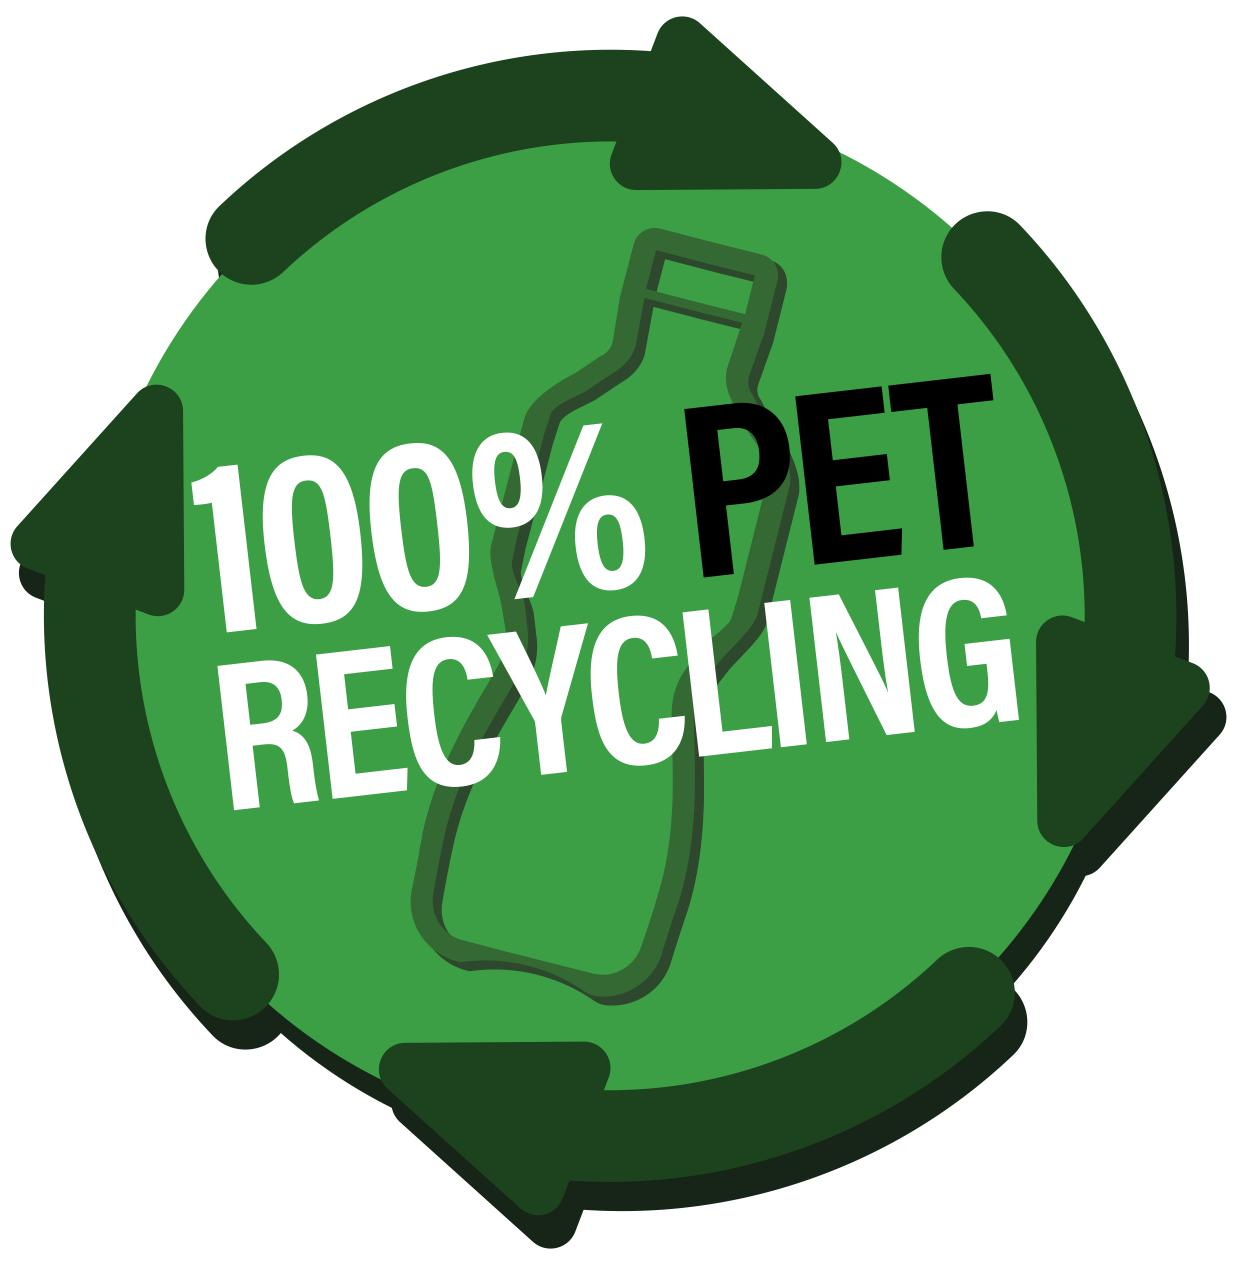 100% PET recycling